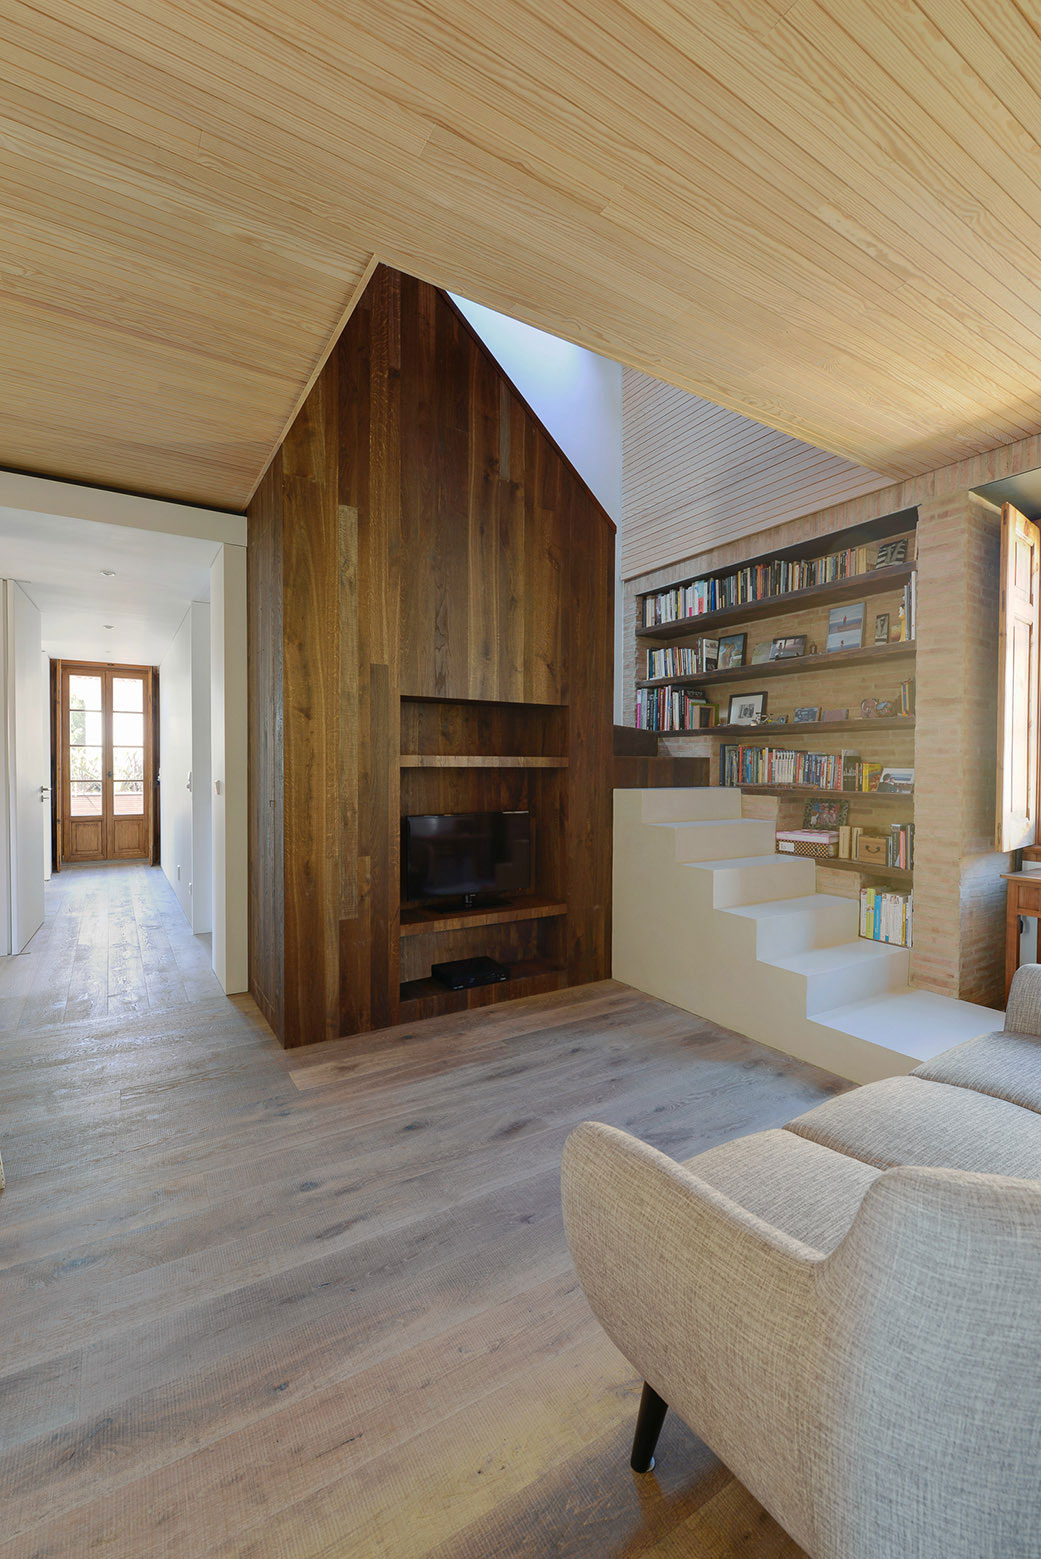 Renovation of a 1923 House in Estoril by Ricardo Moreno Arquitectos-14